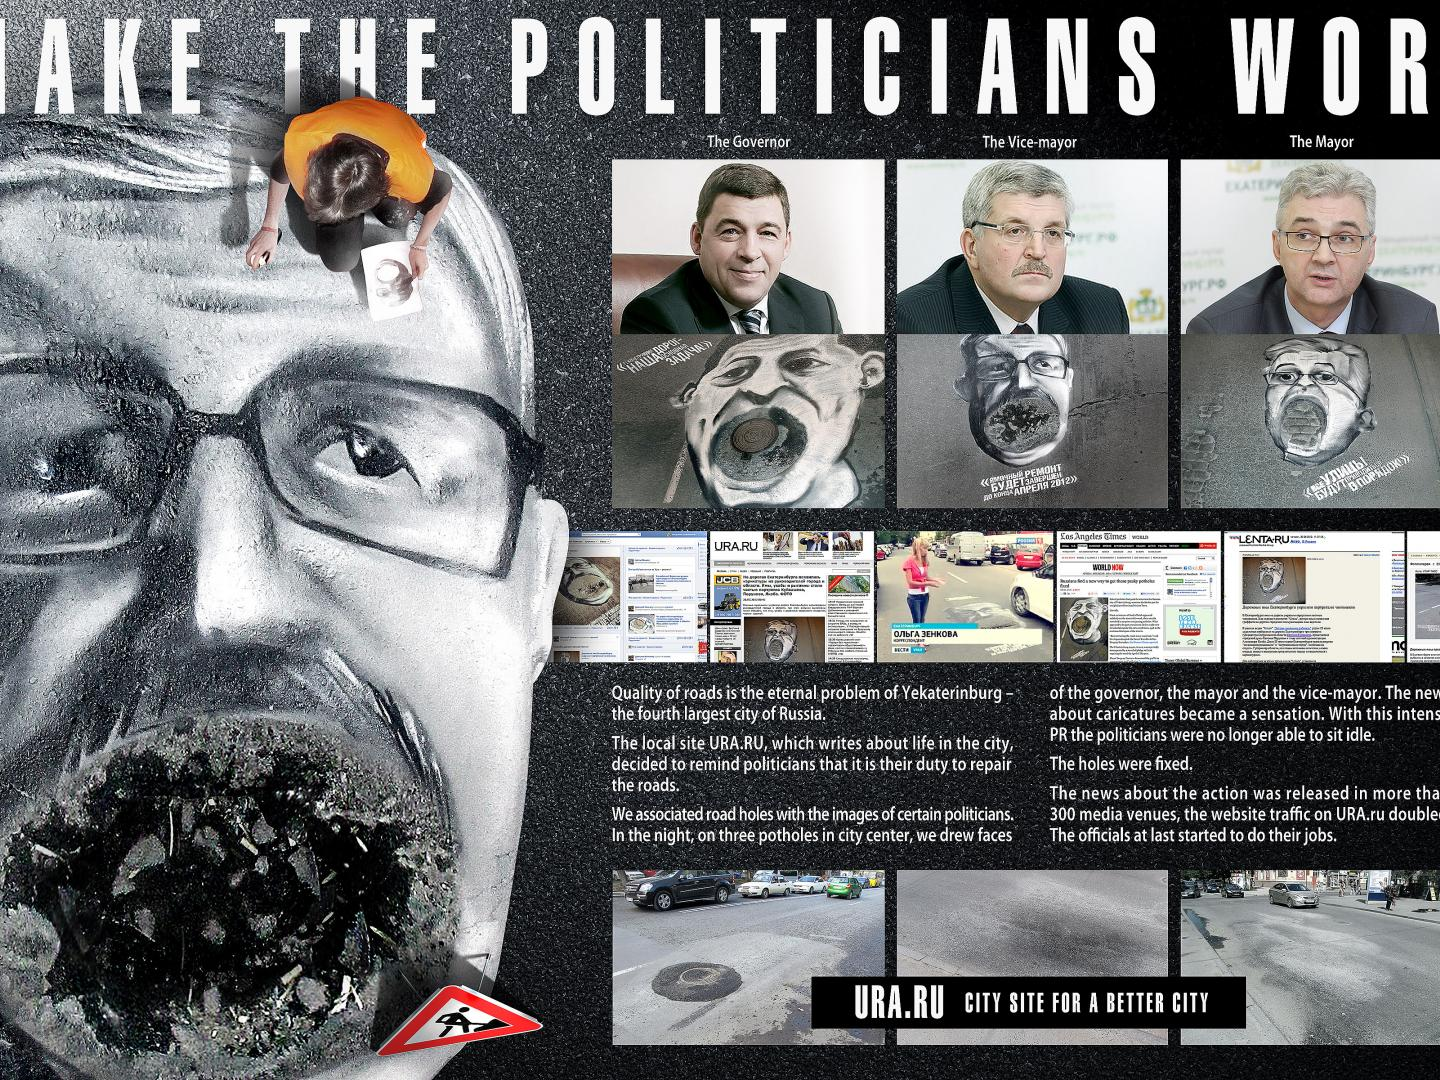 Make the politicians work Thumbnail